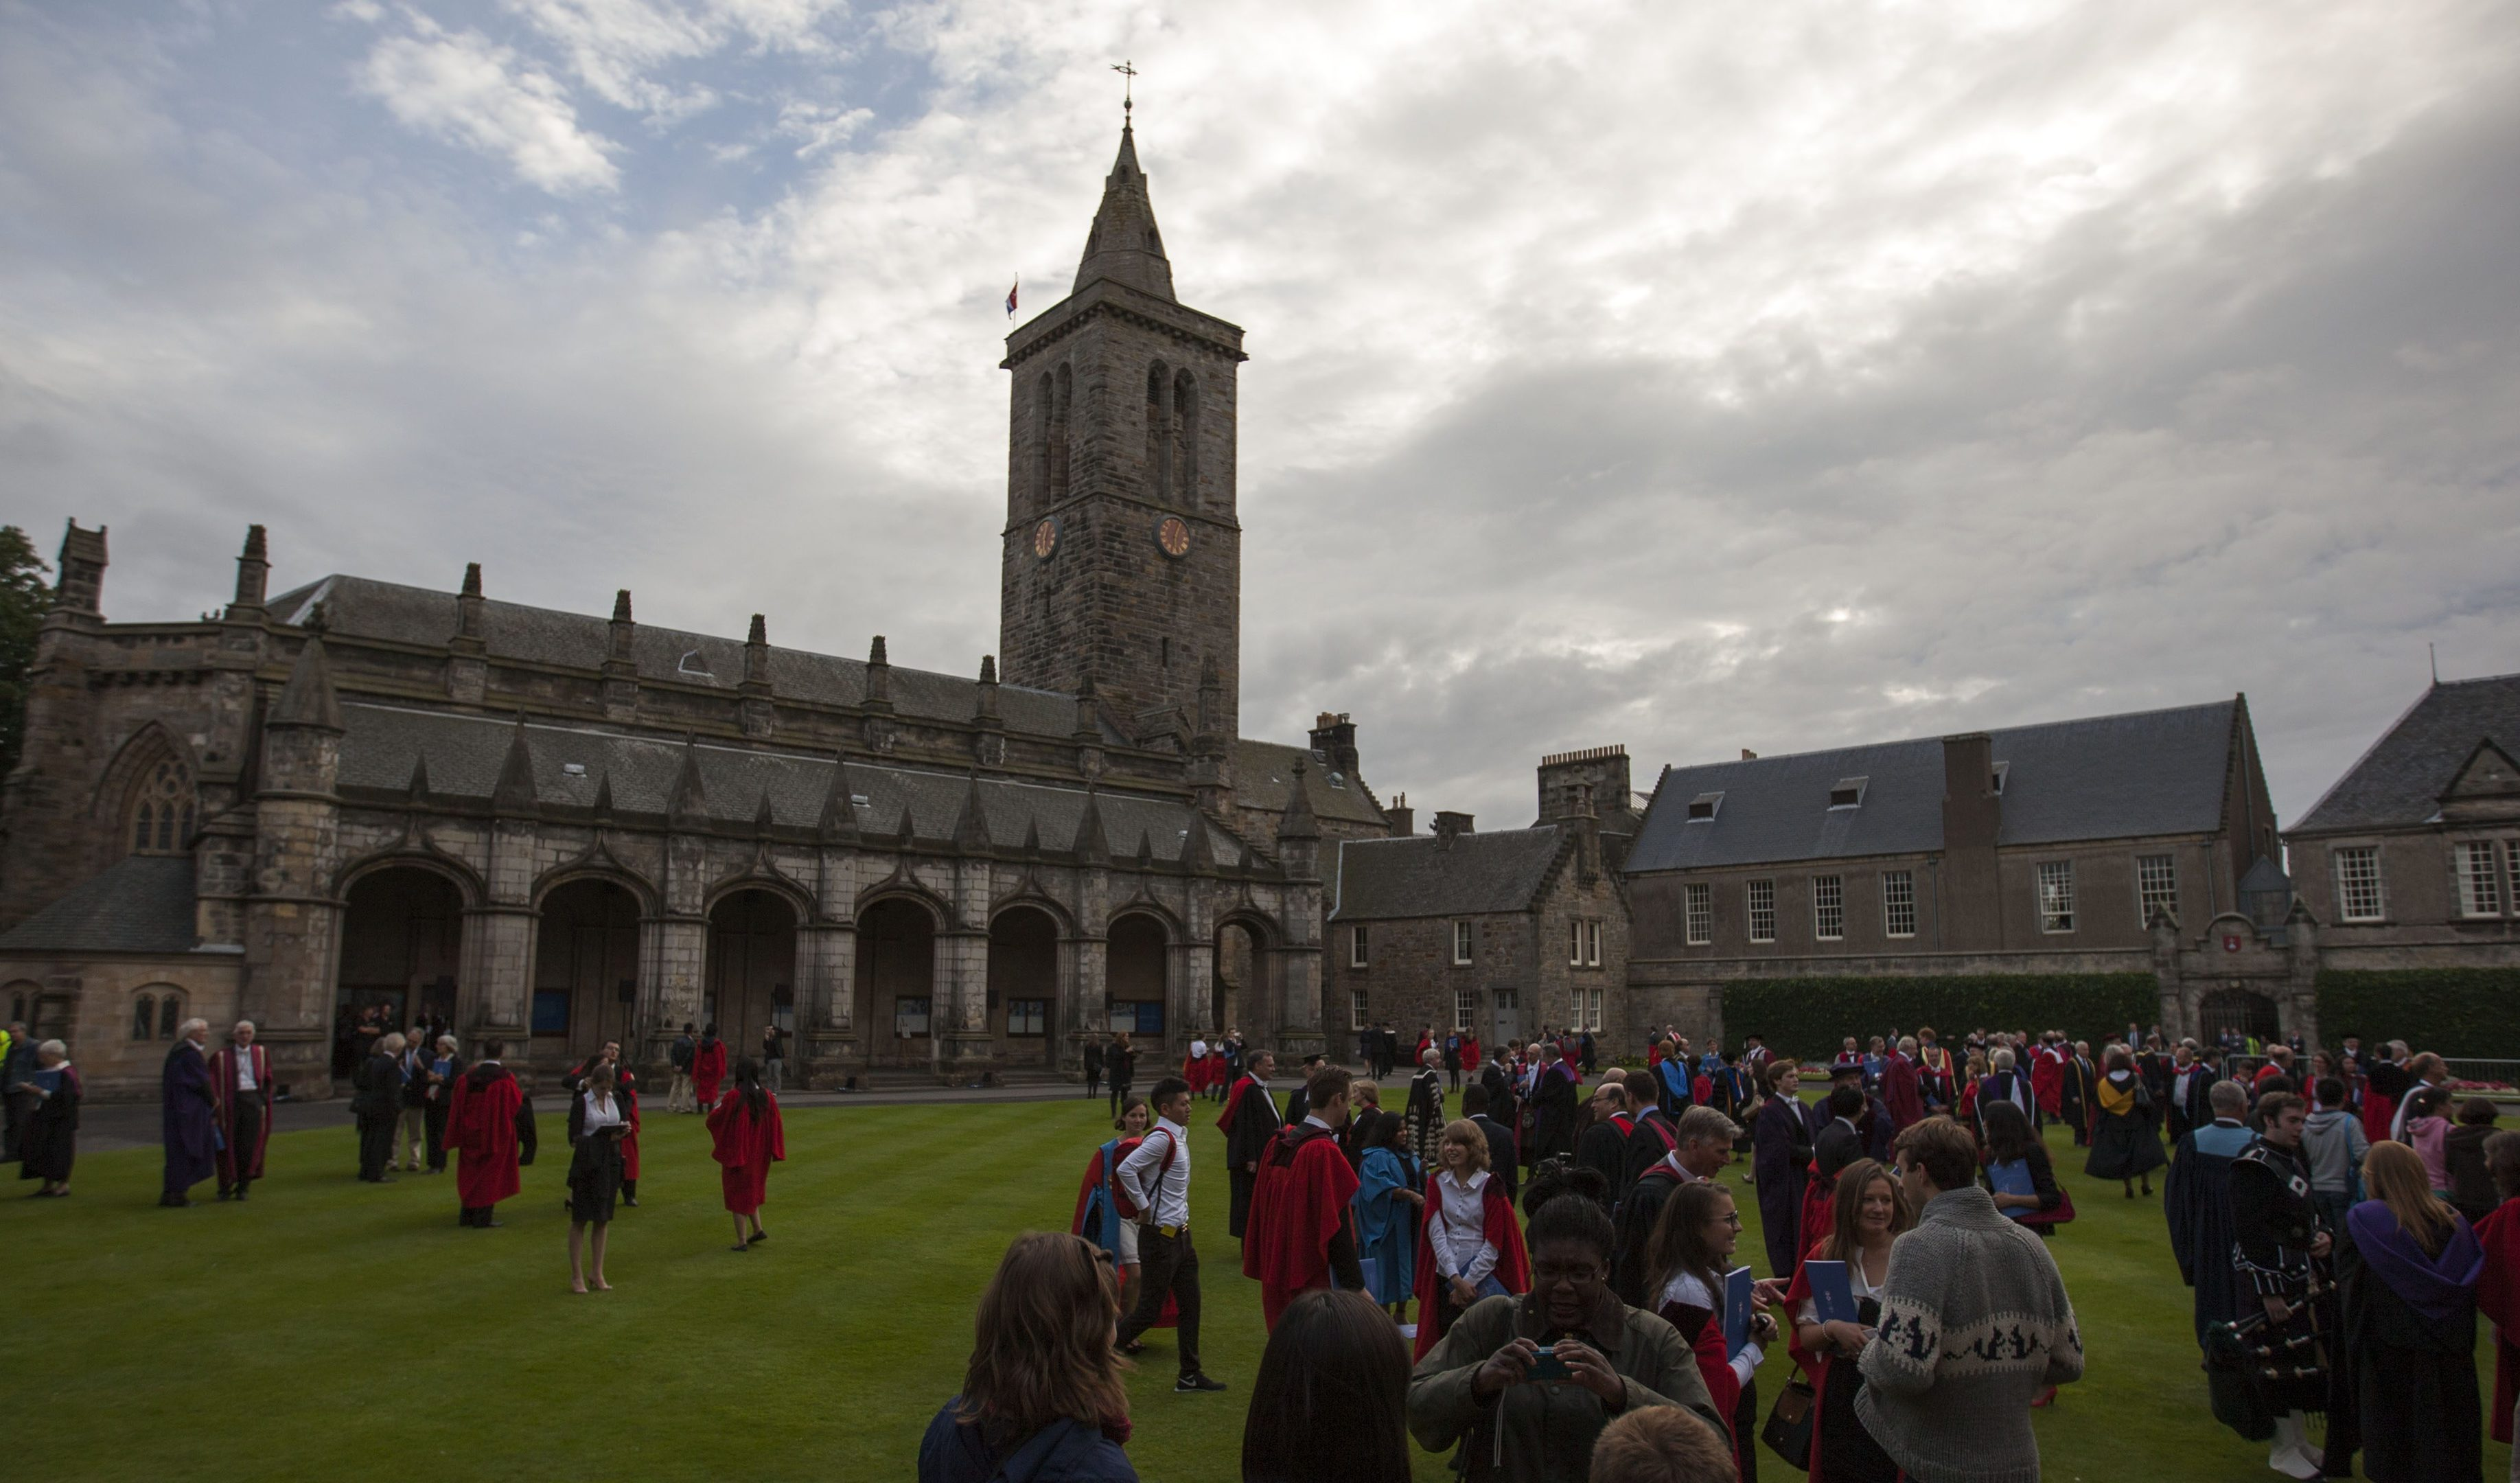 Two students from St Andrews University have been affected.